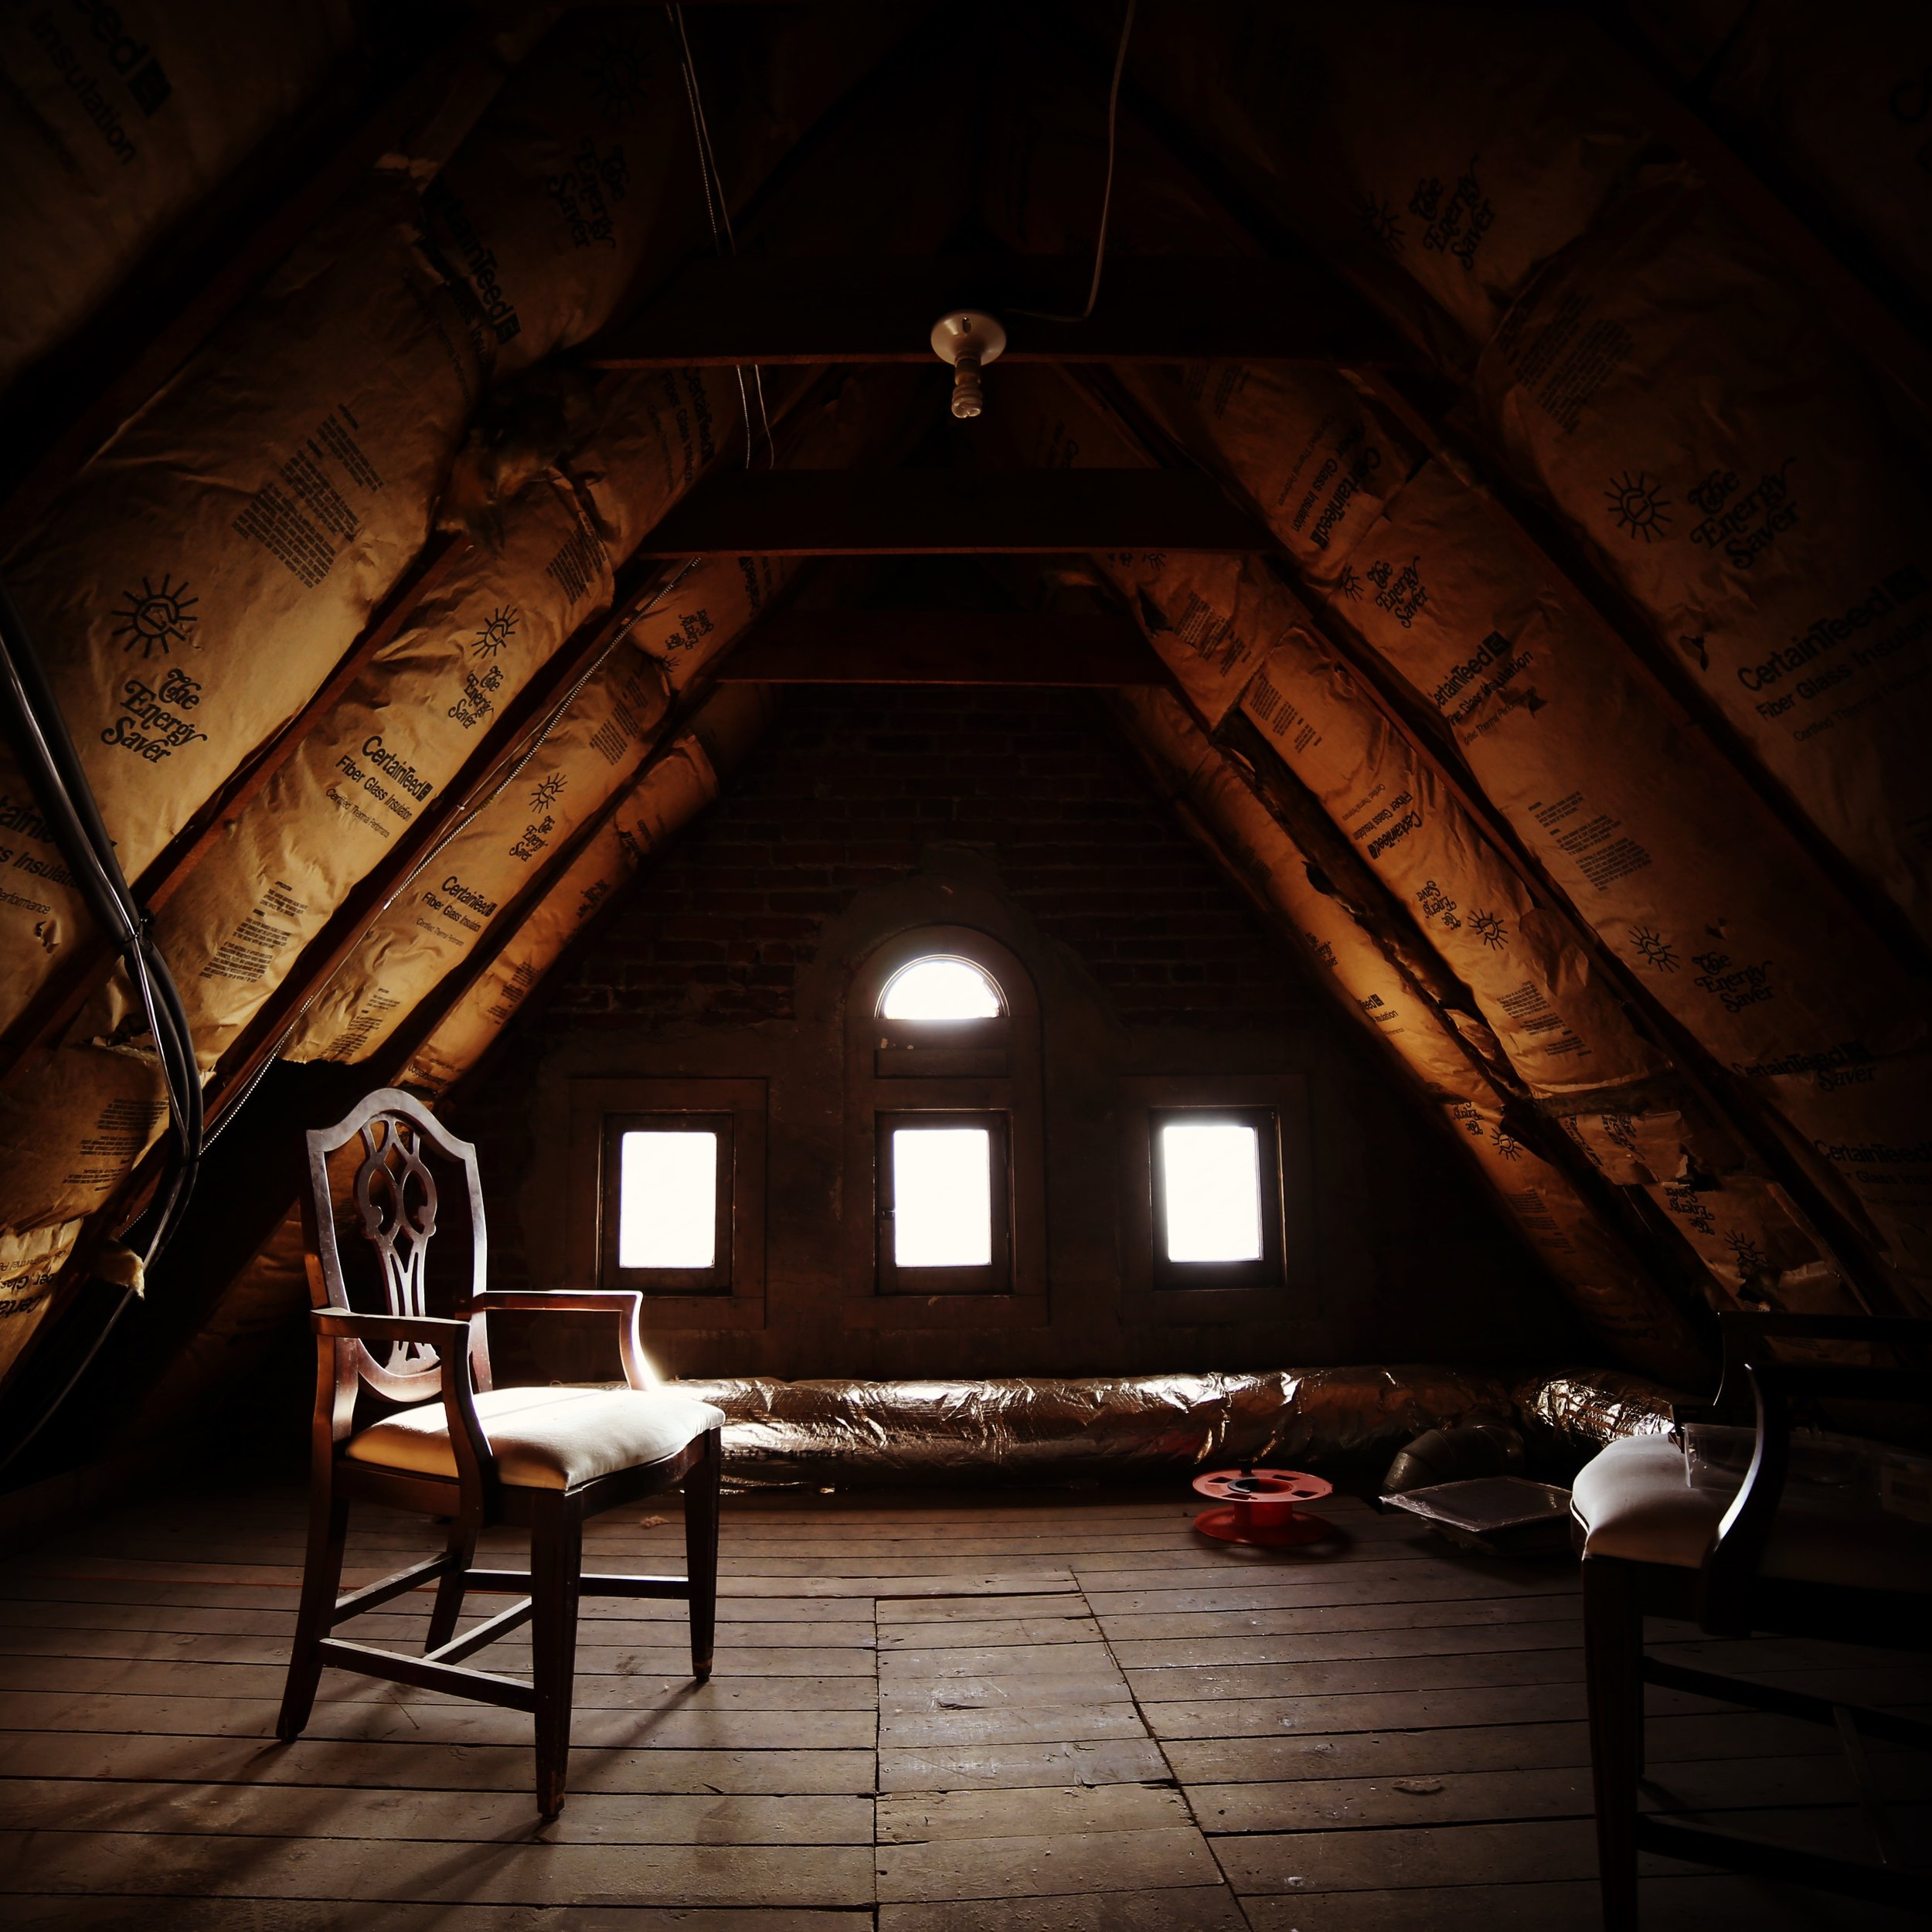 Stories in the Attic